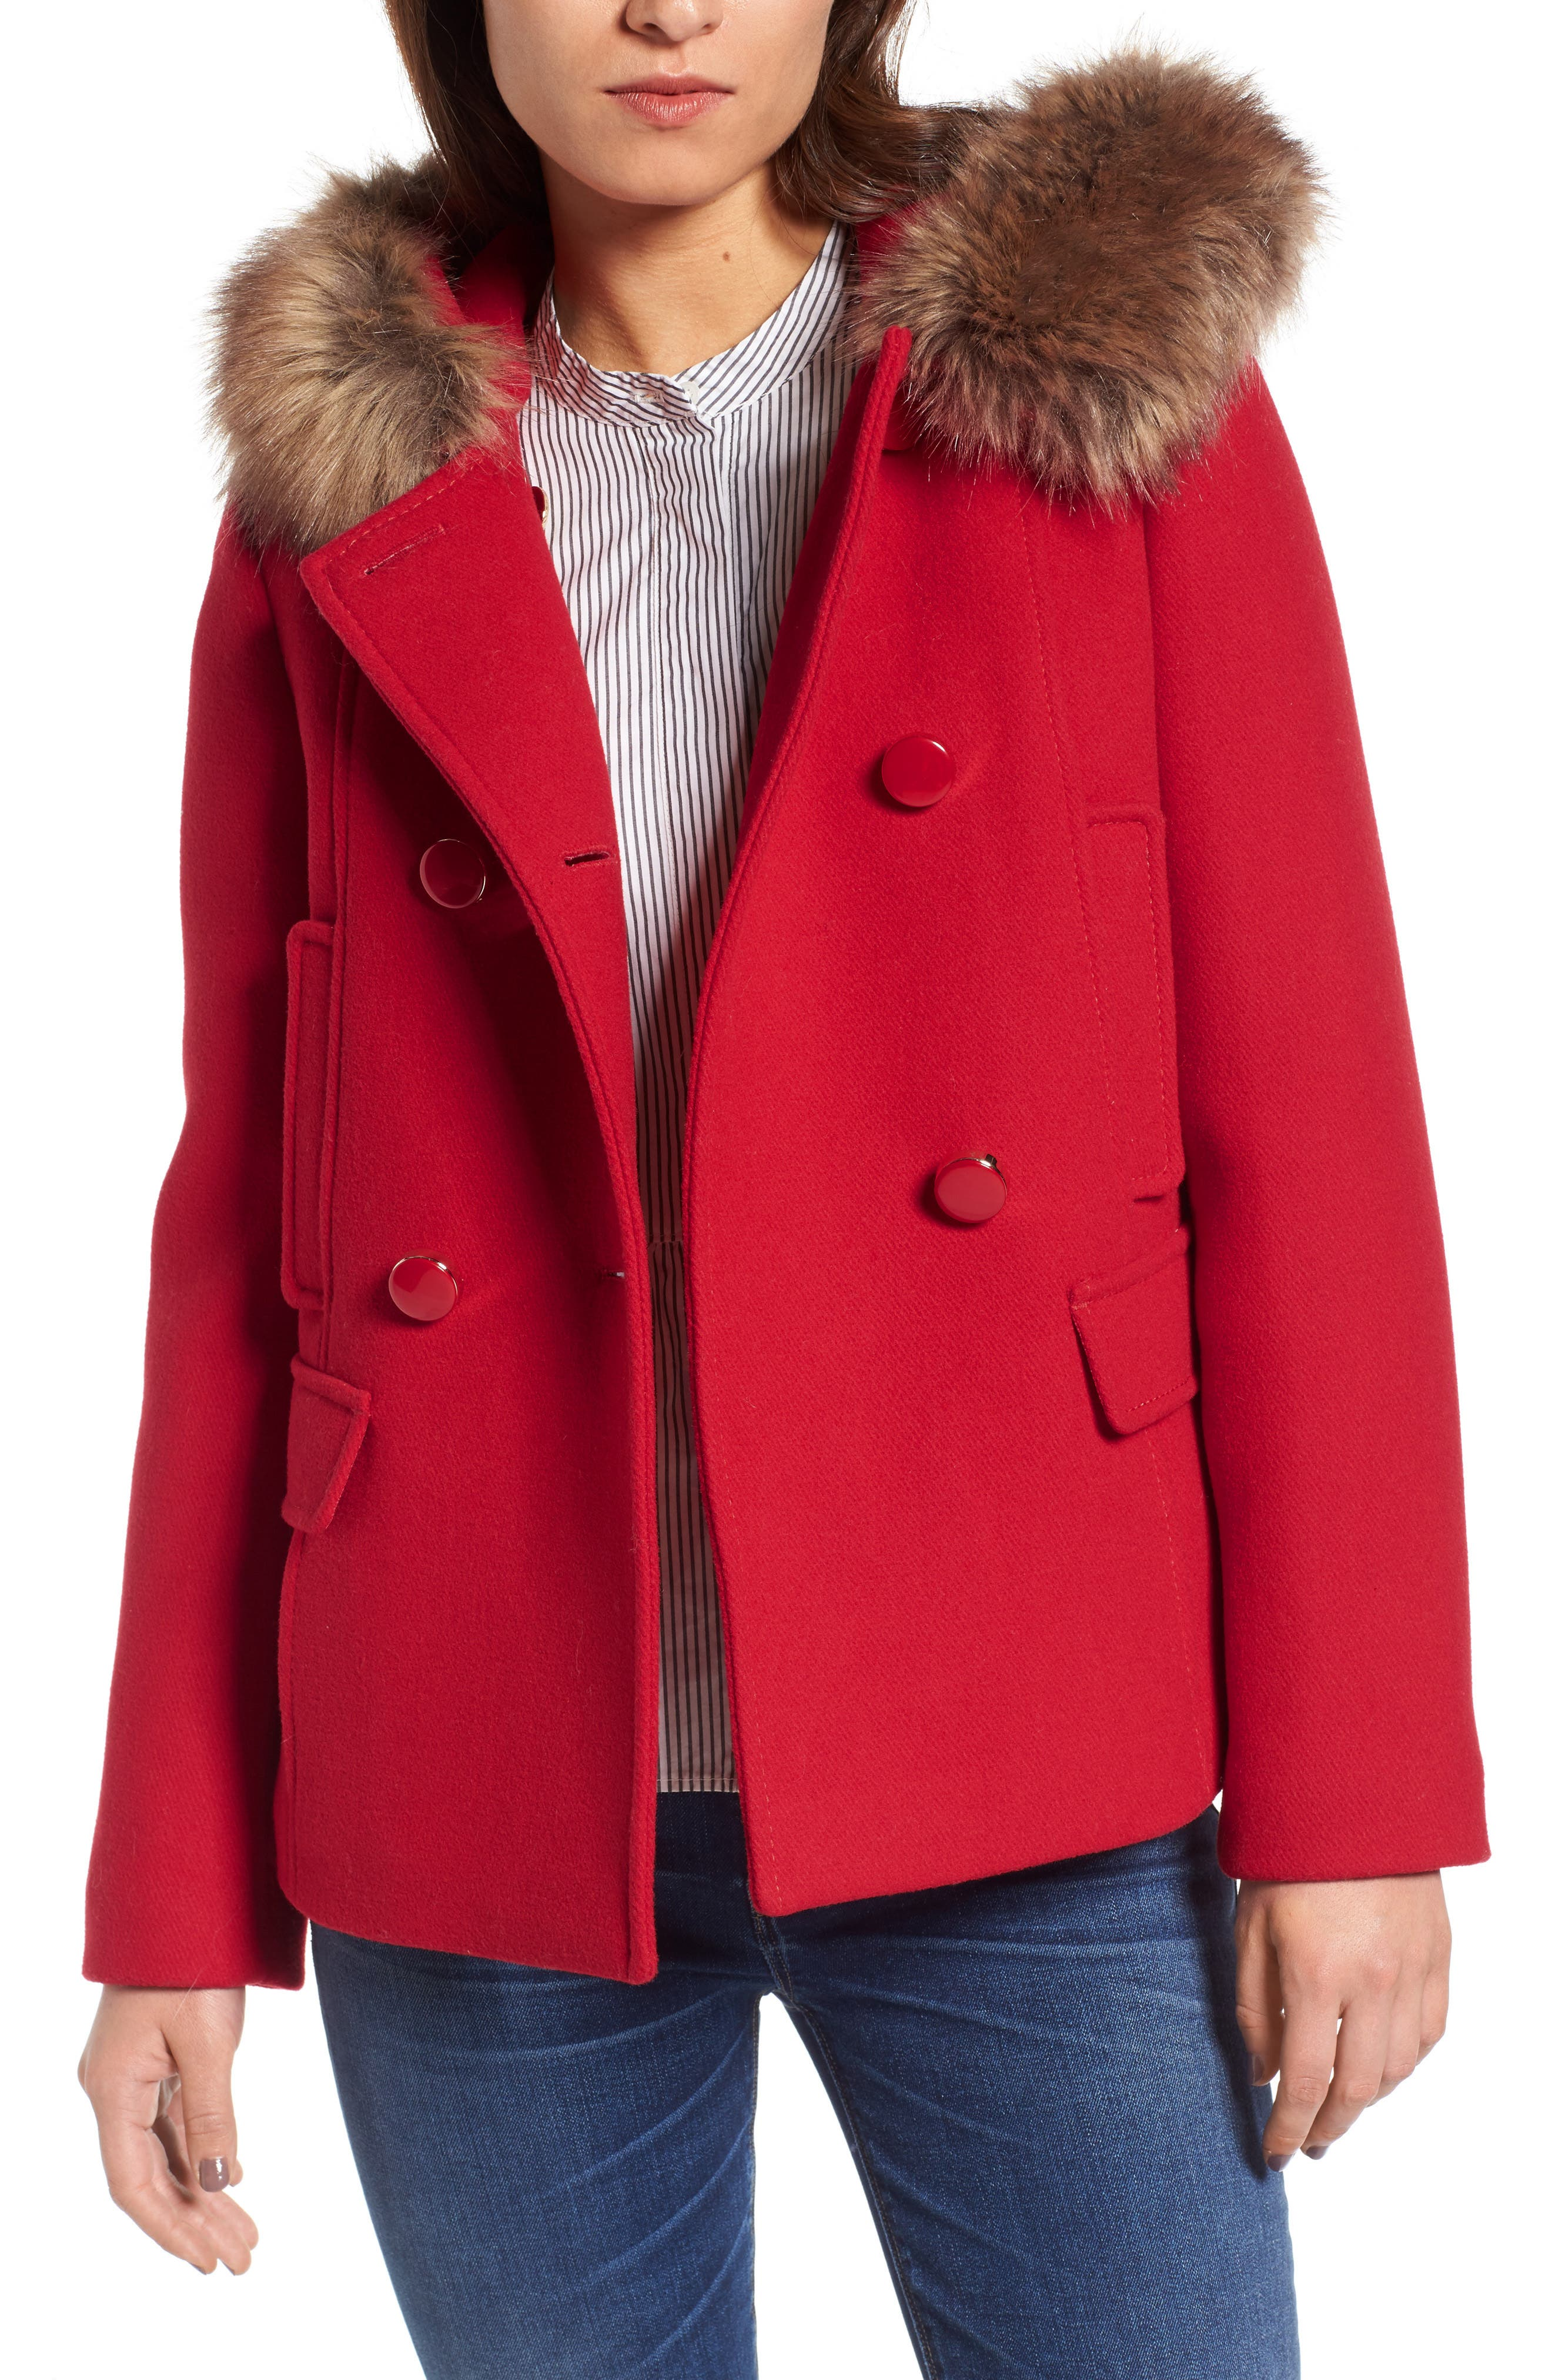 Alternate Image 1 Selected - kate spade new york faux fur trim hooded peacoat